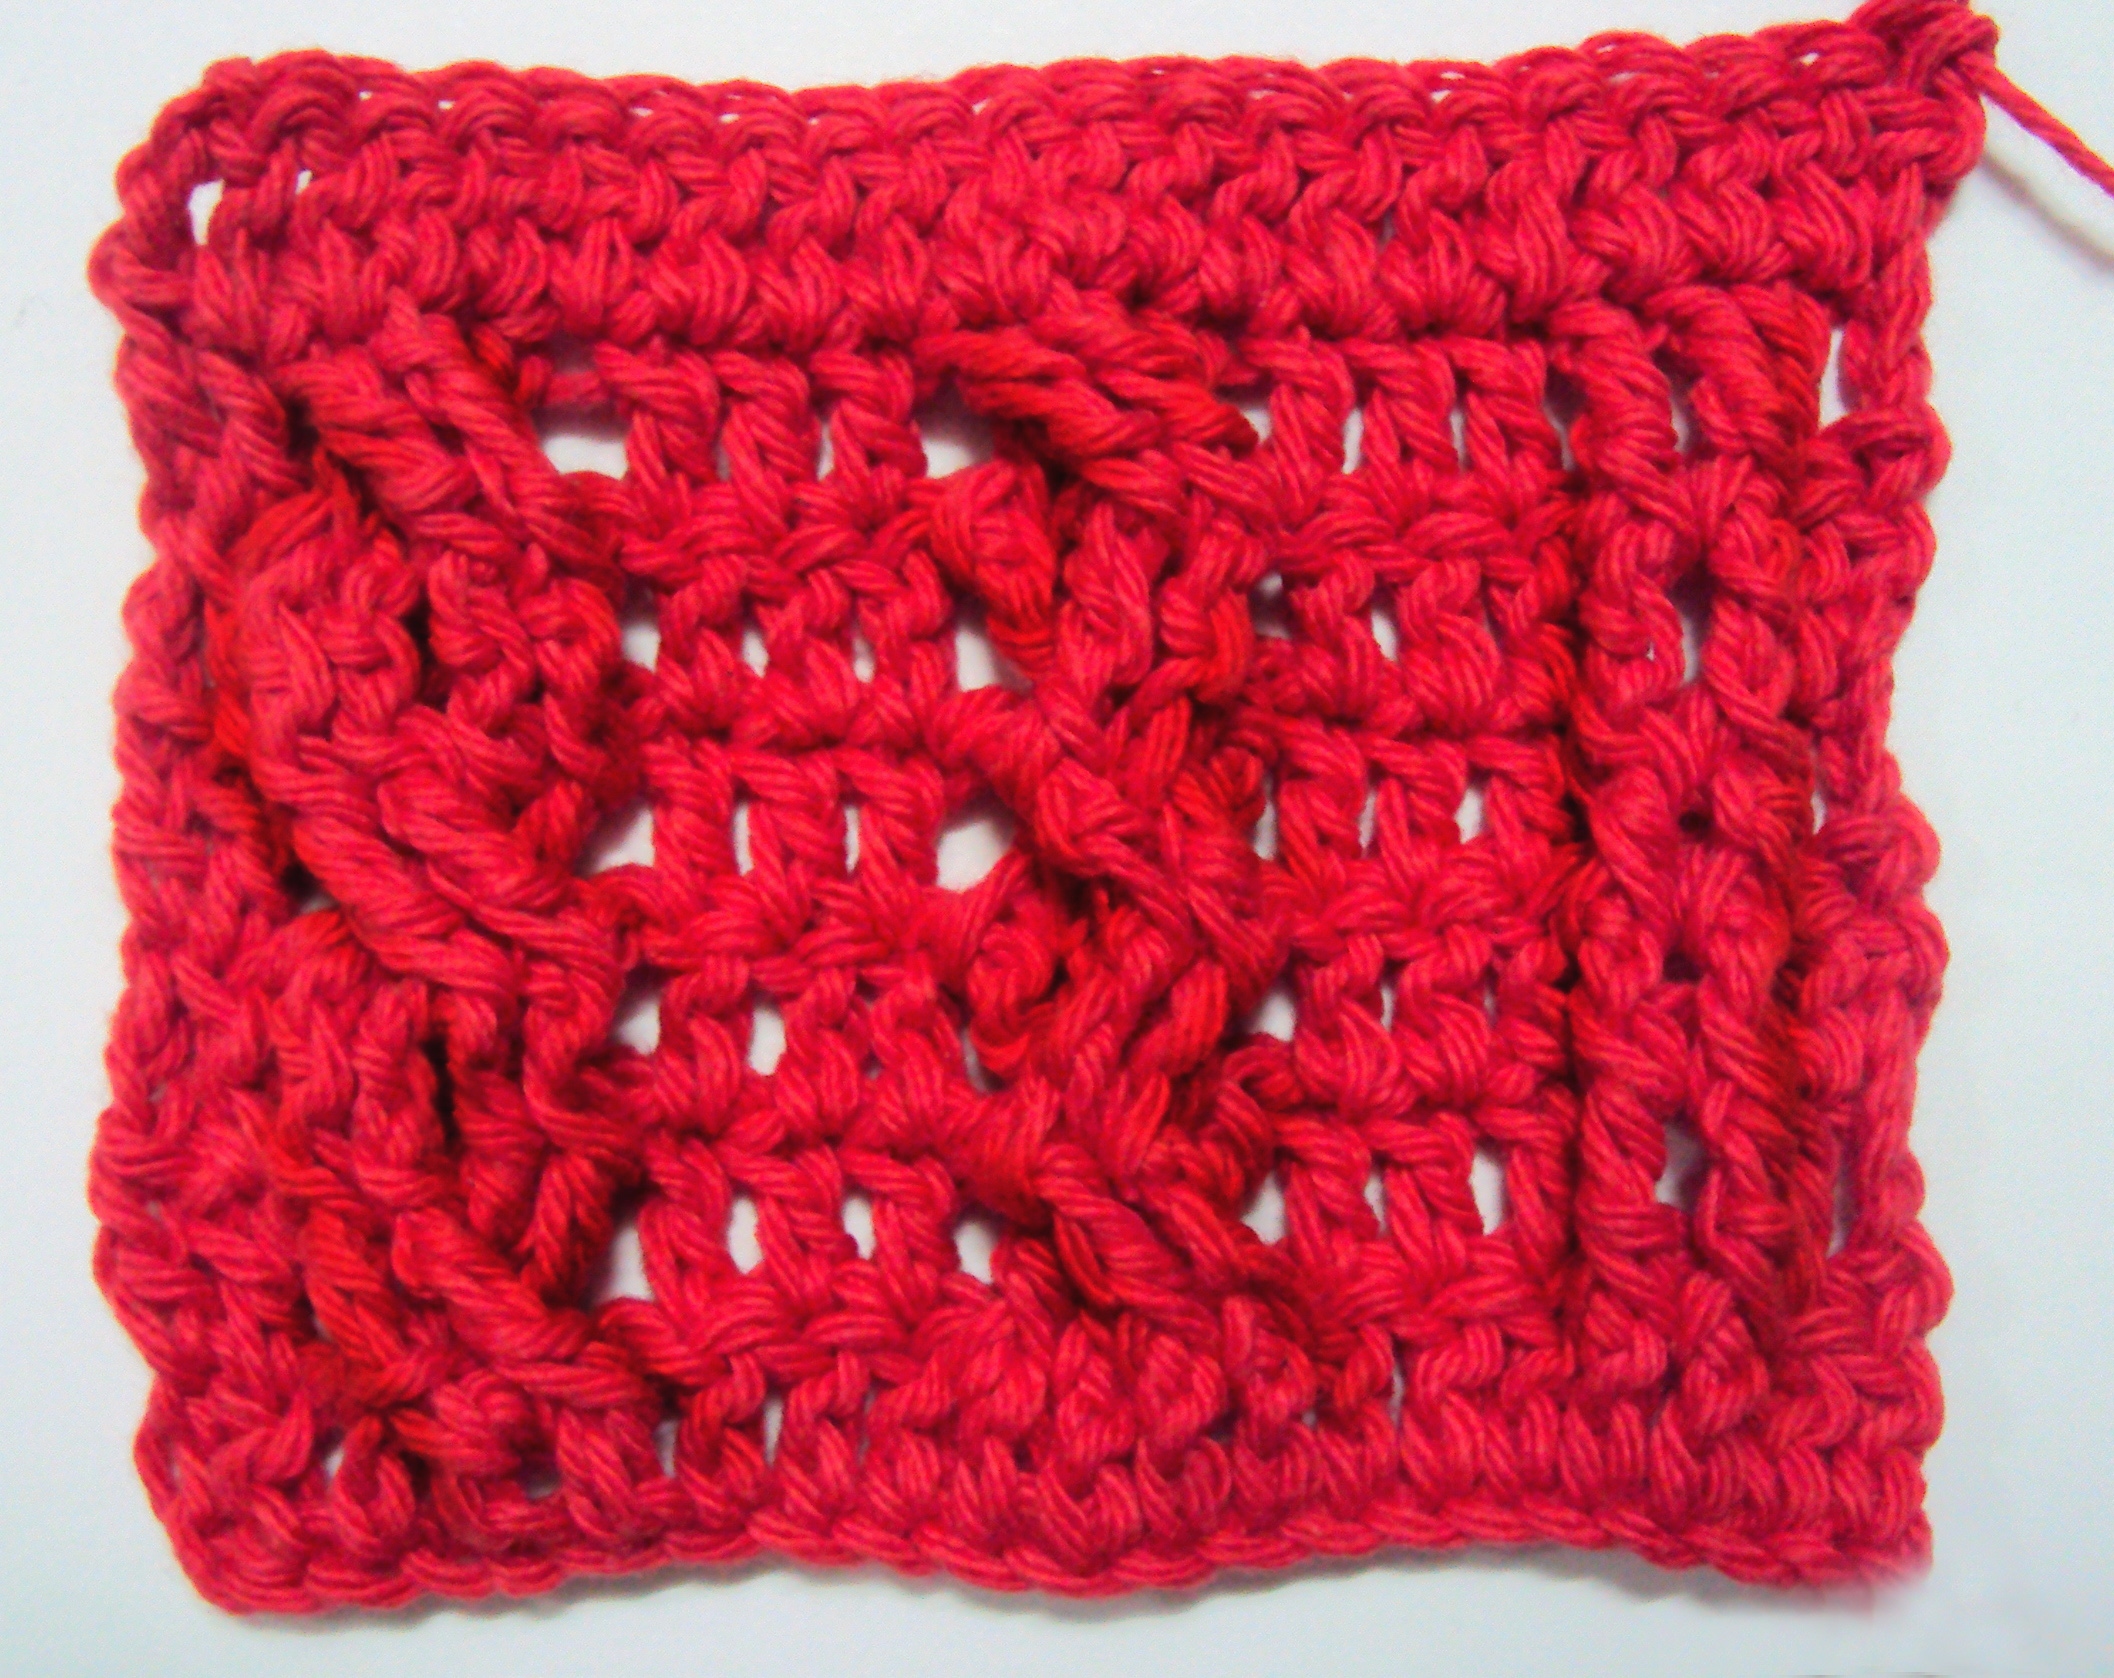 How To Crochet Different Stitches : ... How to Crochet: Cable Stitches - Crochet Patterns, Tutorials and News